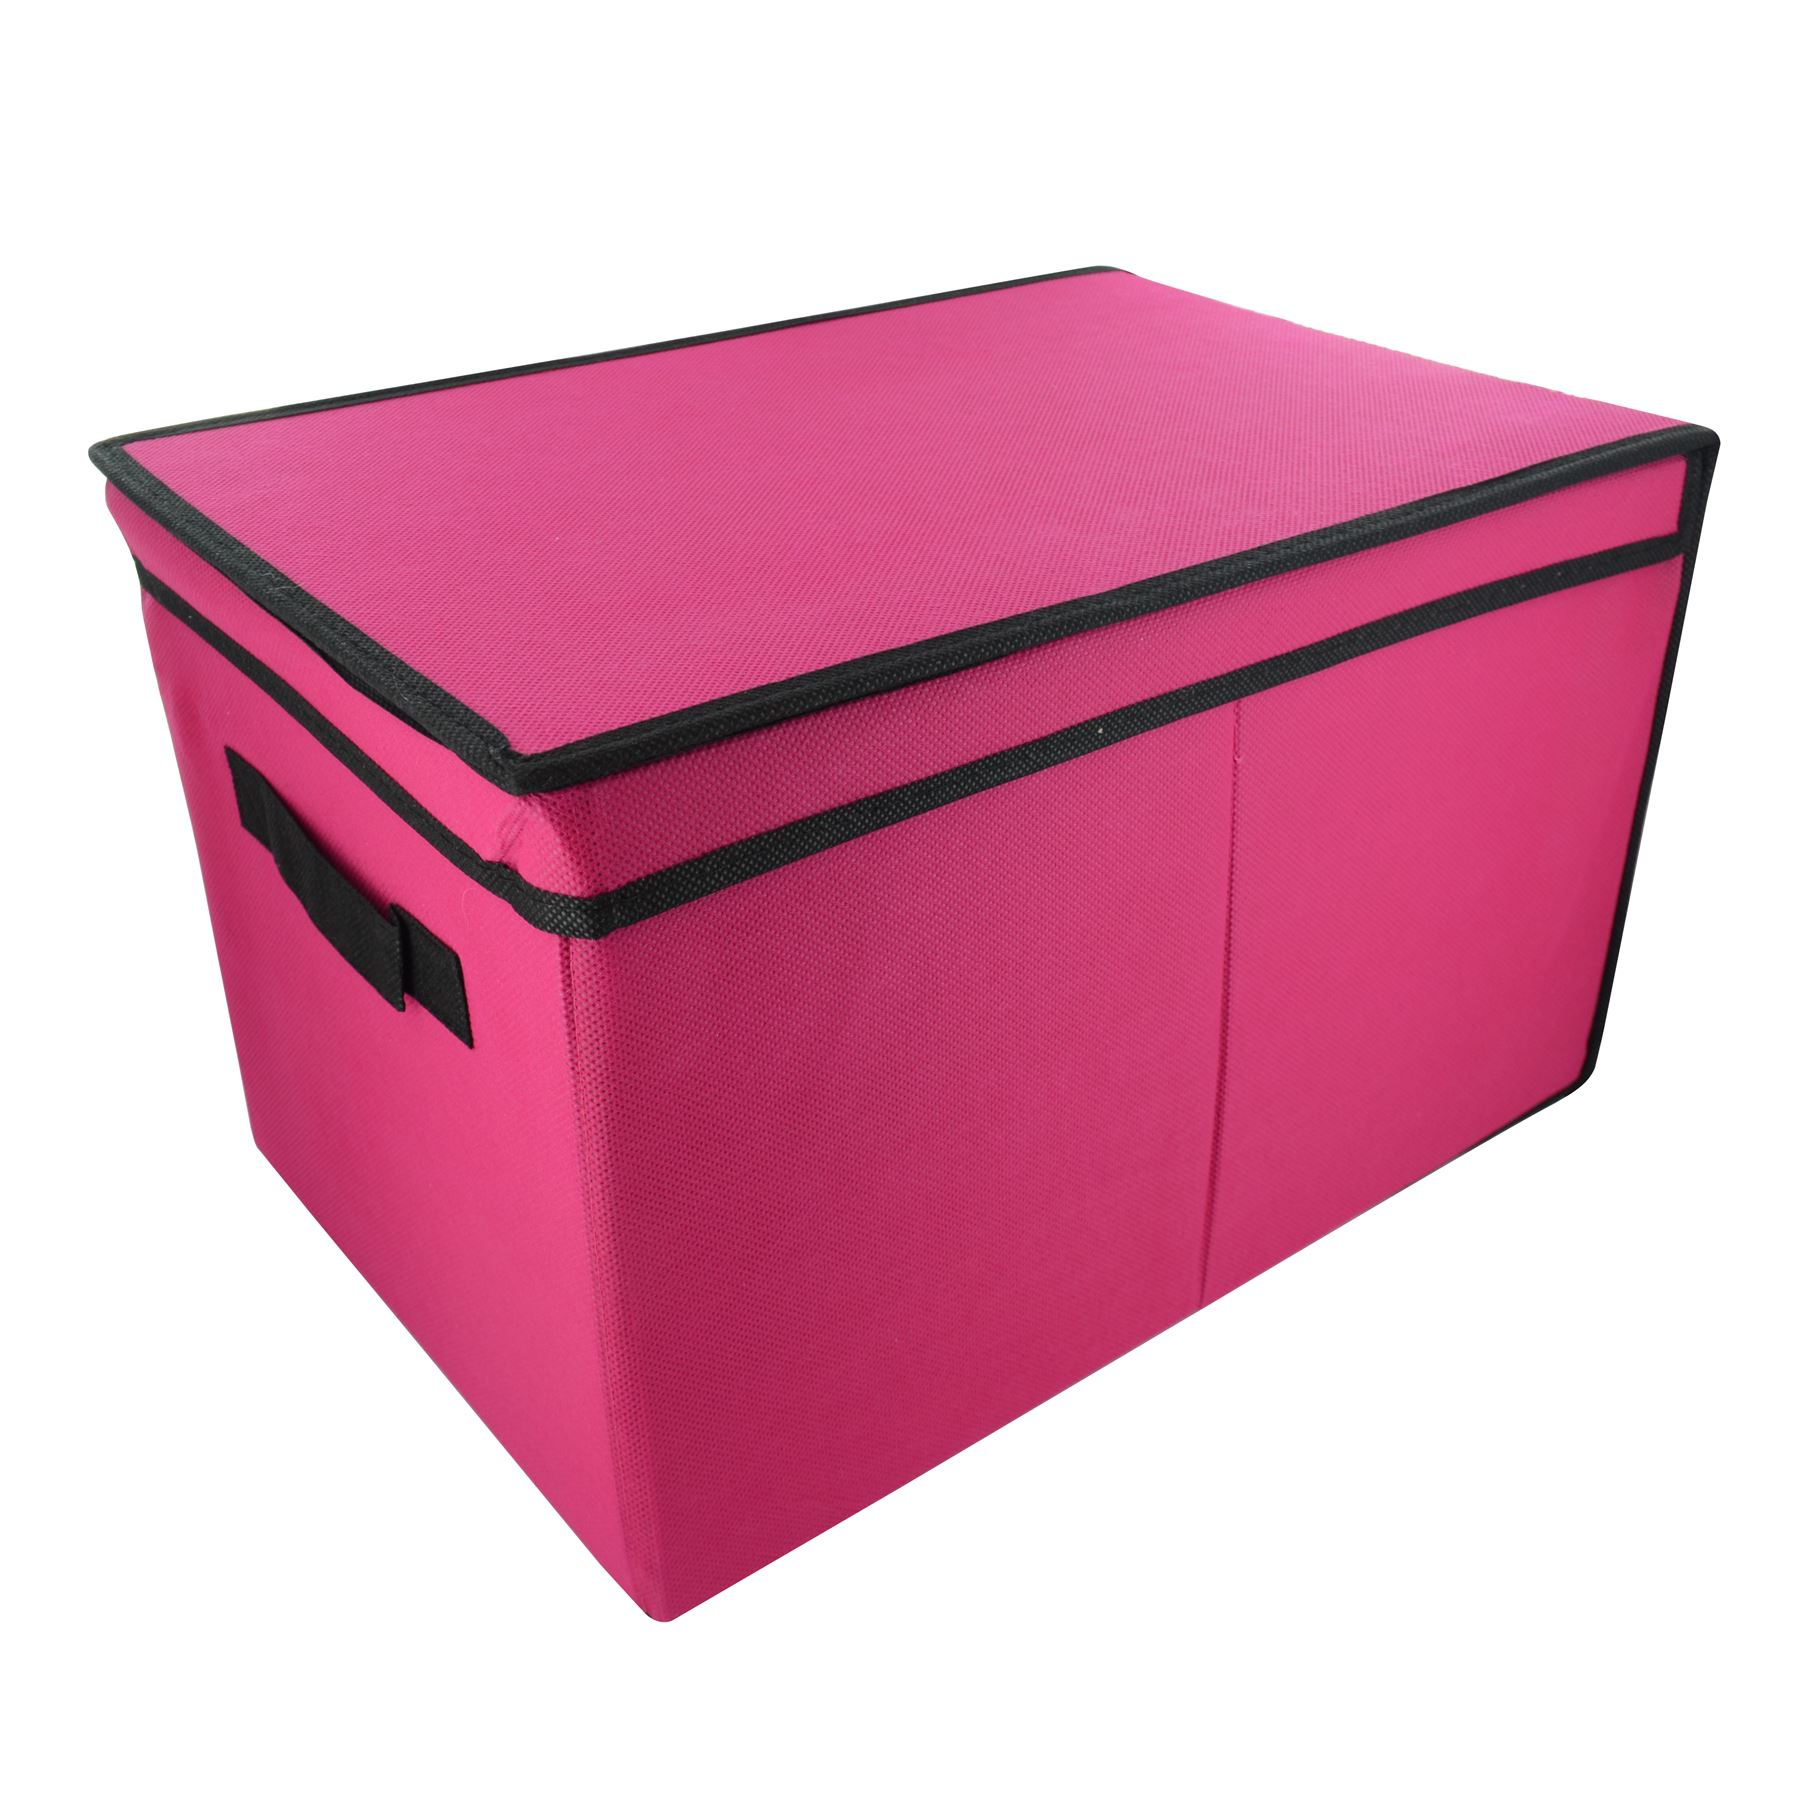 Bedroom Storage Boxes Home Bedroom Tote Canvas Storage Toy Box Foldable Lid